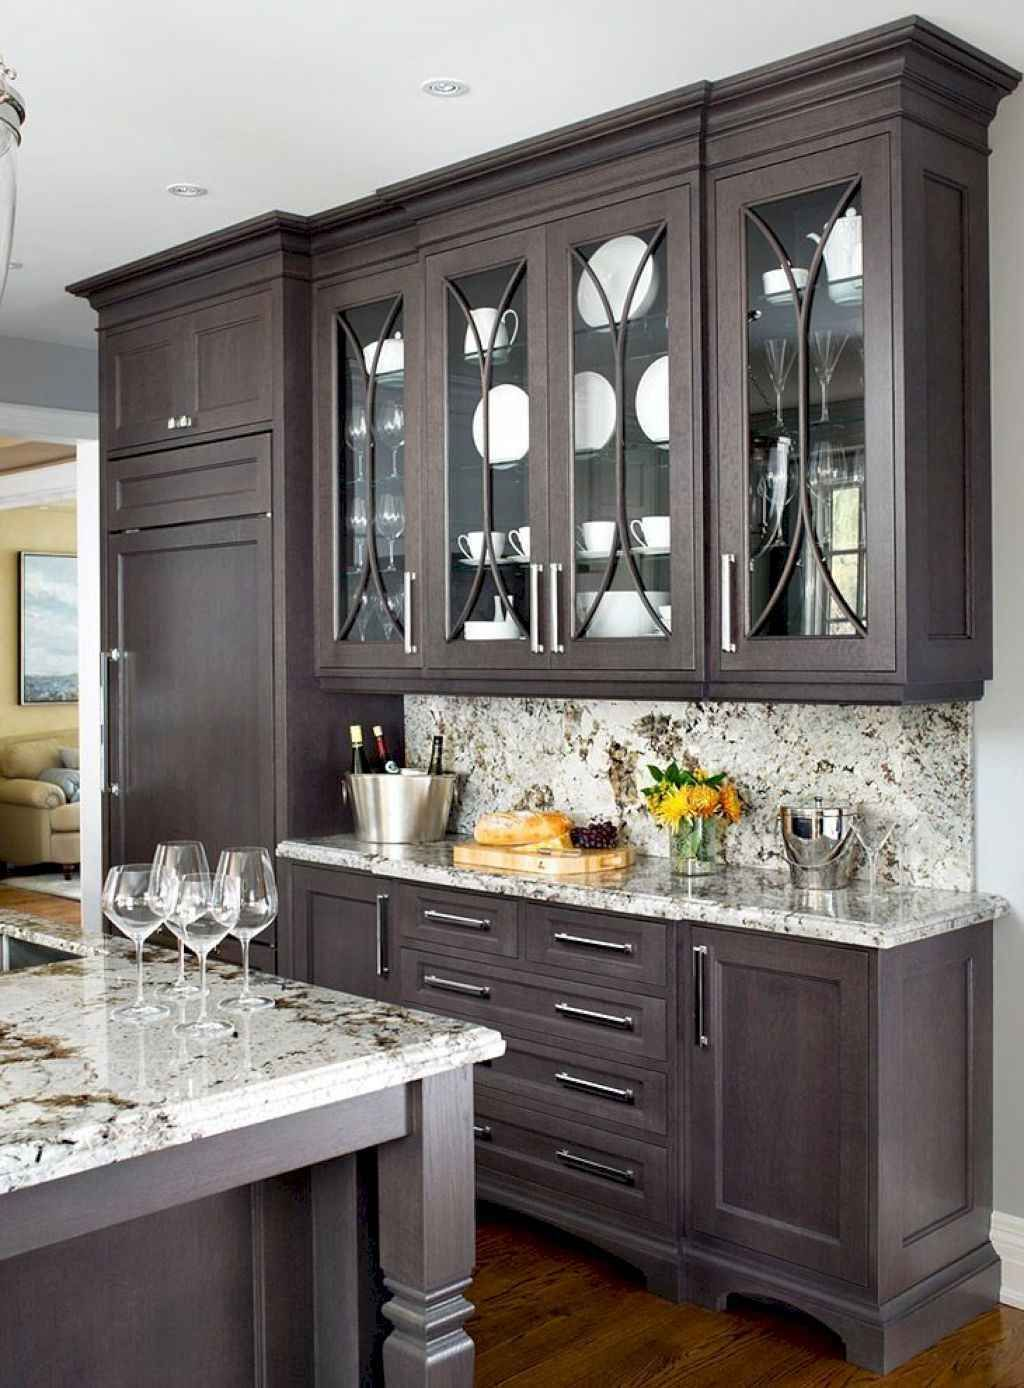 Gorgeous Kitchen Cabinets Design and Decor Ideas (29 #darkkitchencabinets